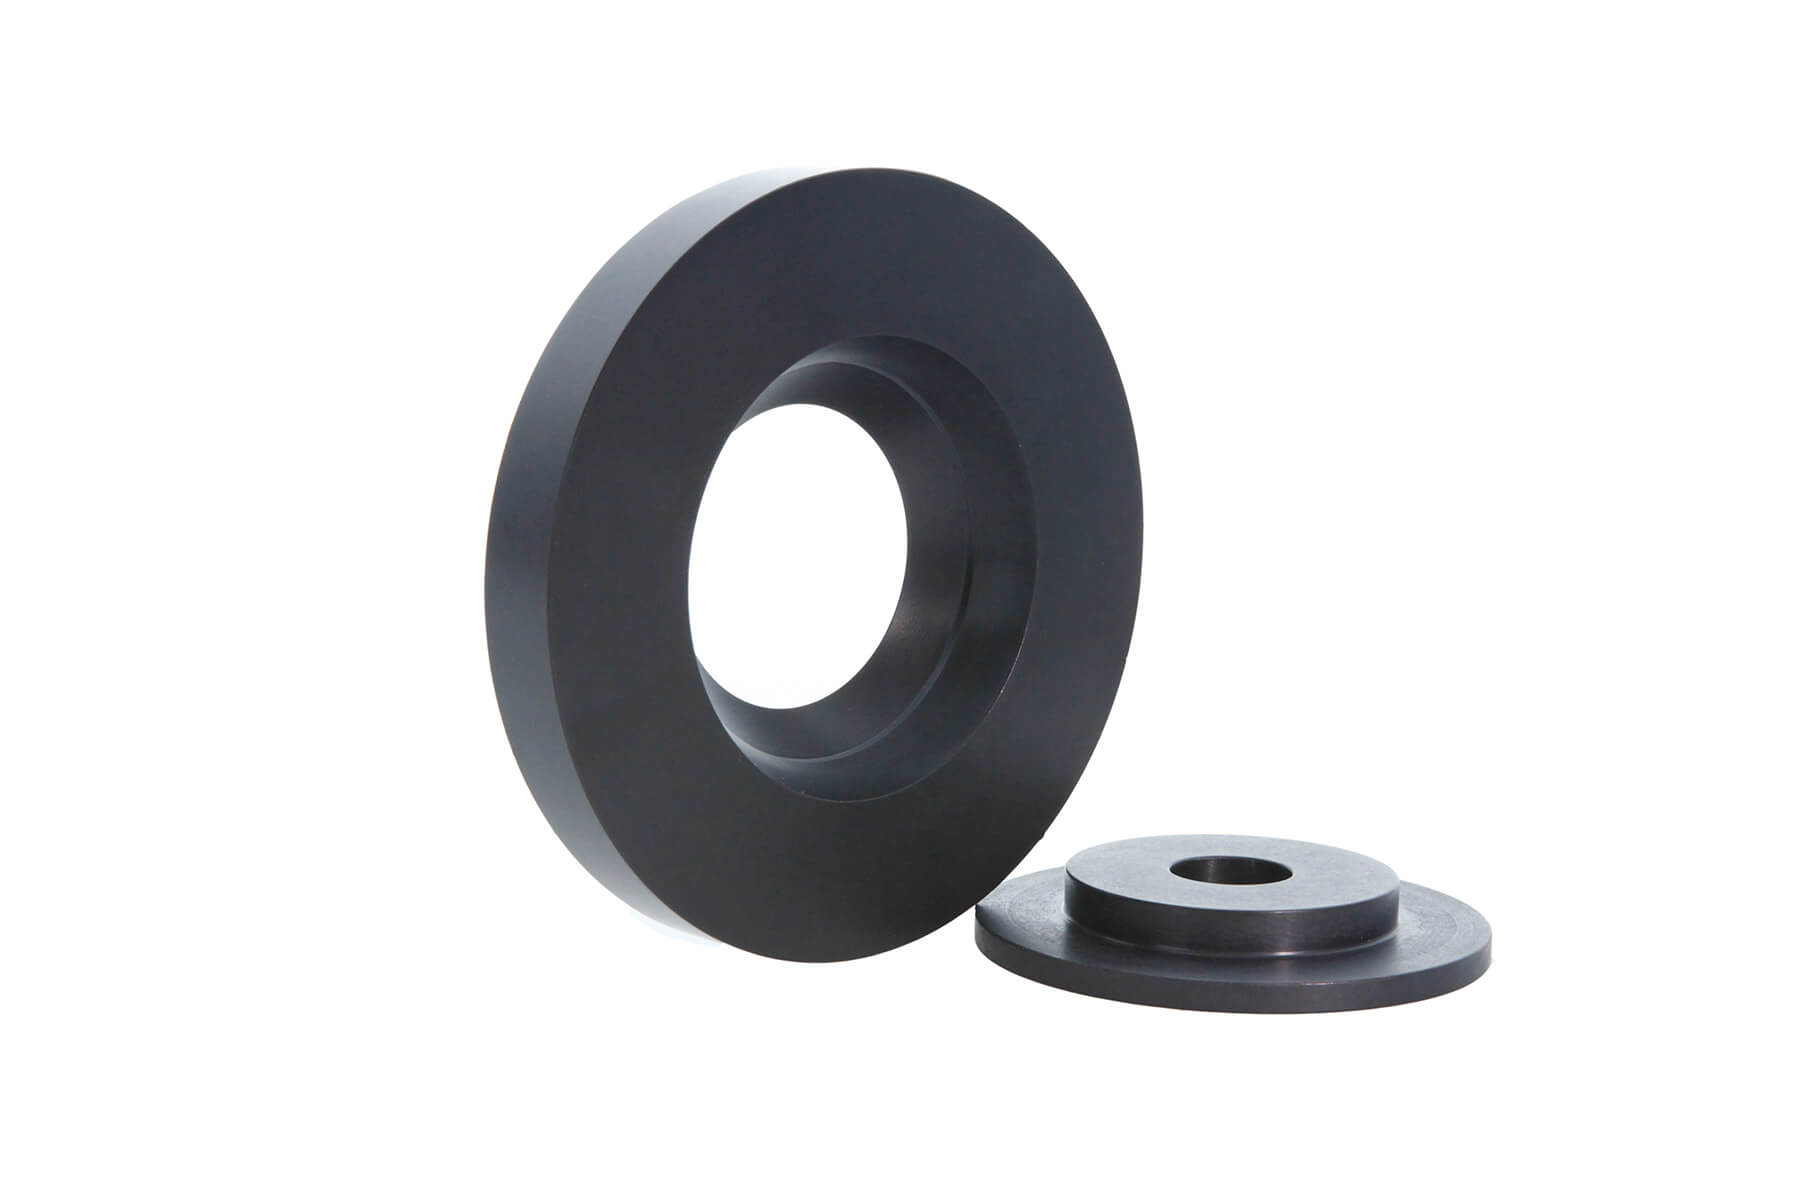 TCSC 100mm Ball Adapter Upright